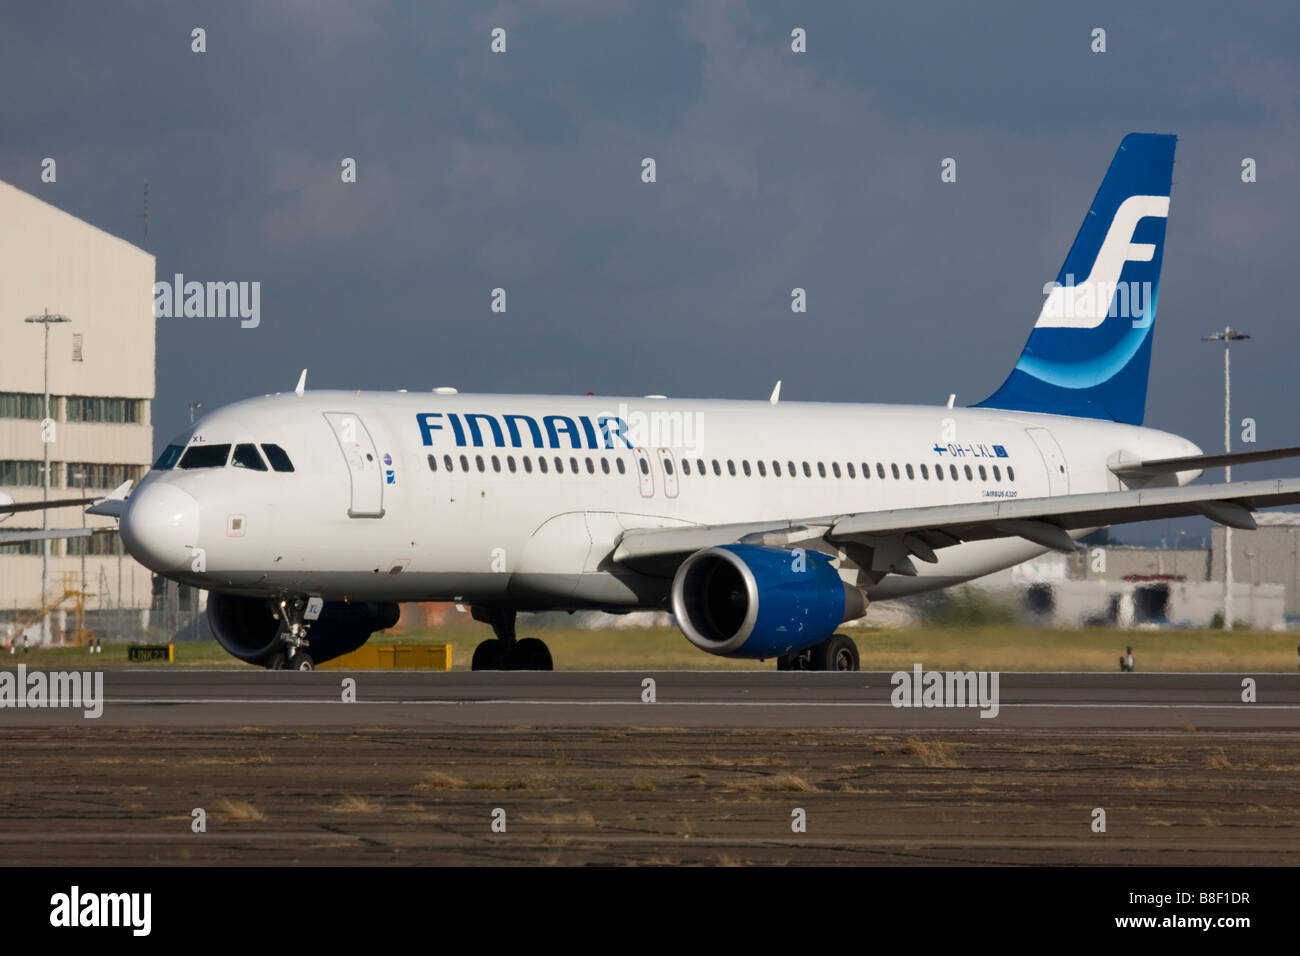 Finnair Airbus A320-214 taxiing for departure at London Heathrow Airport, United Kingdom Stock Photo